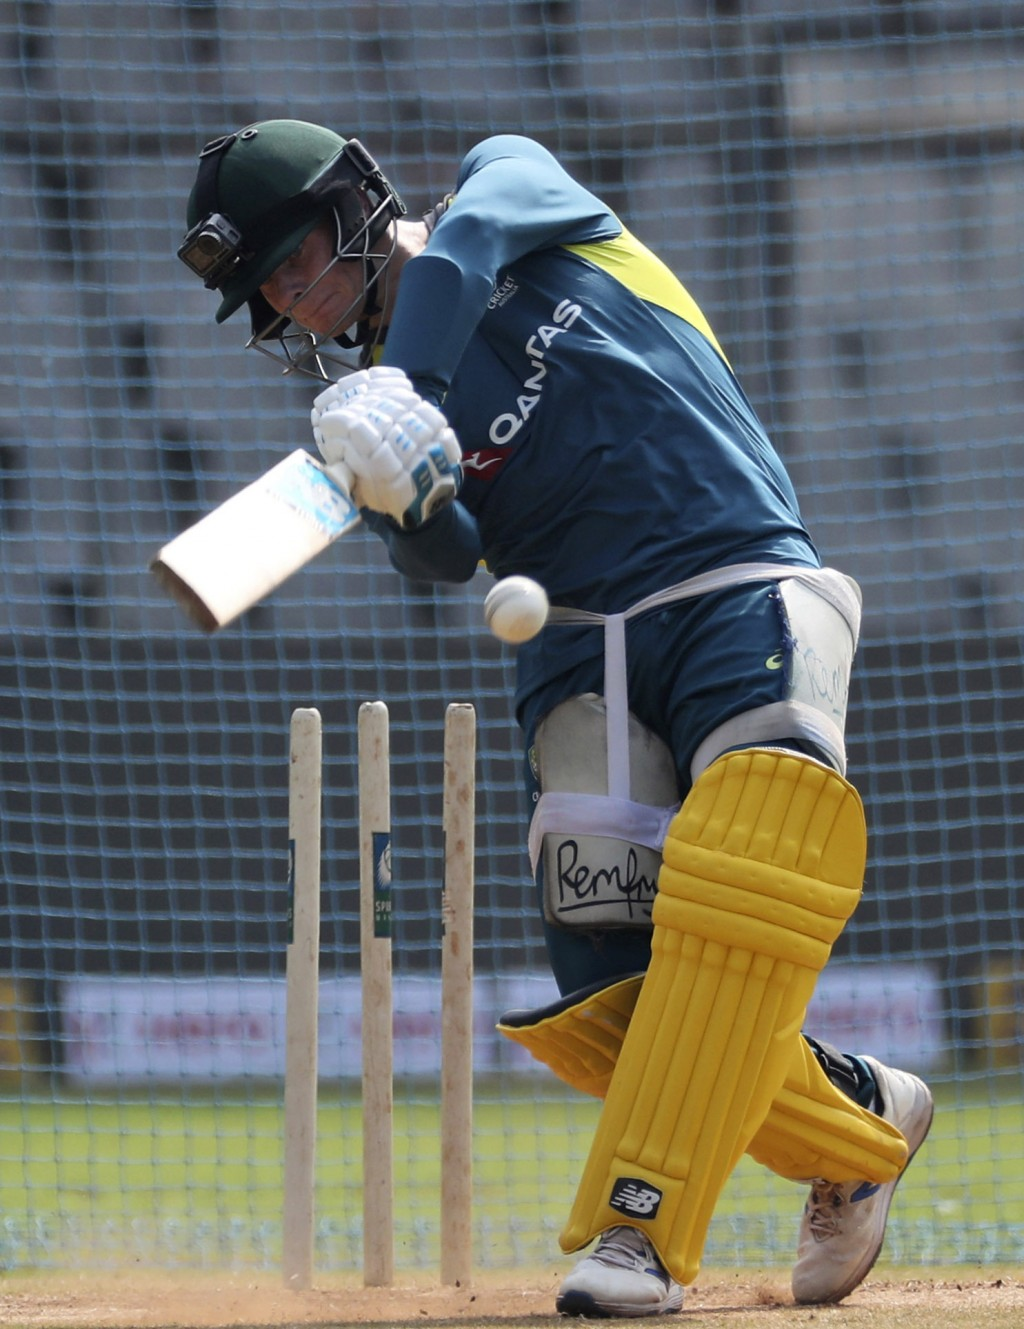 Australia's Steve Smith attends a training session ahead of their first one-day international cricket match against India in Mumbai, India, Monday, Ja...